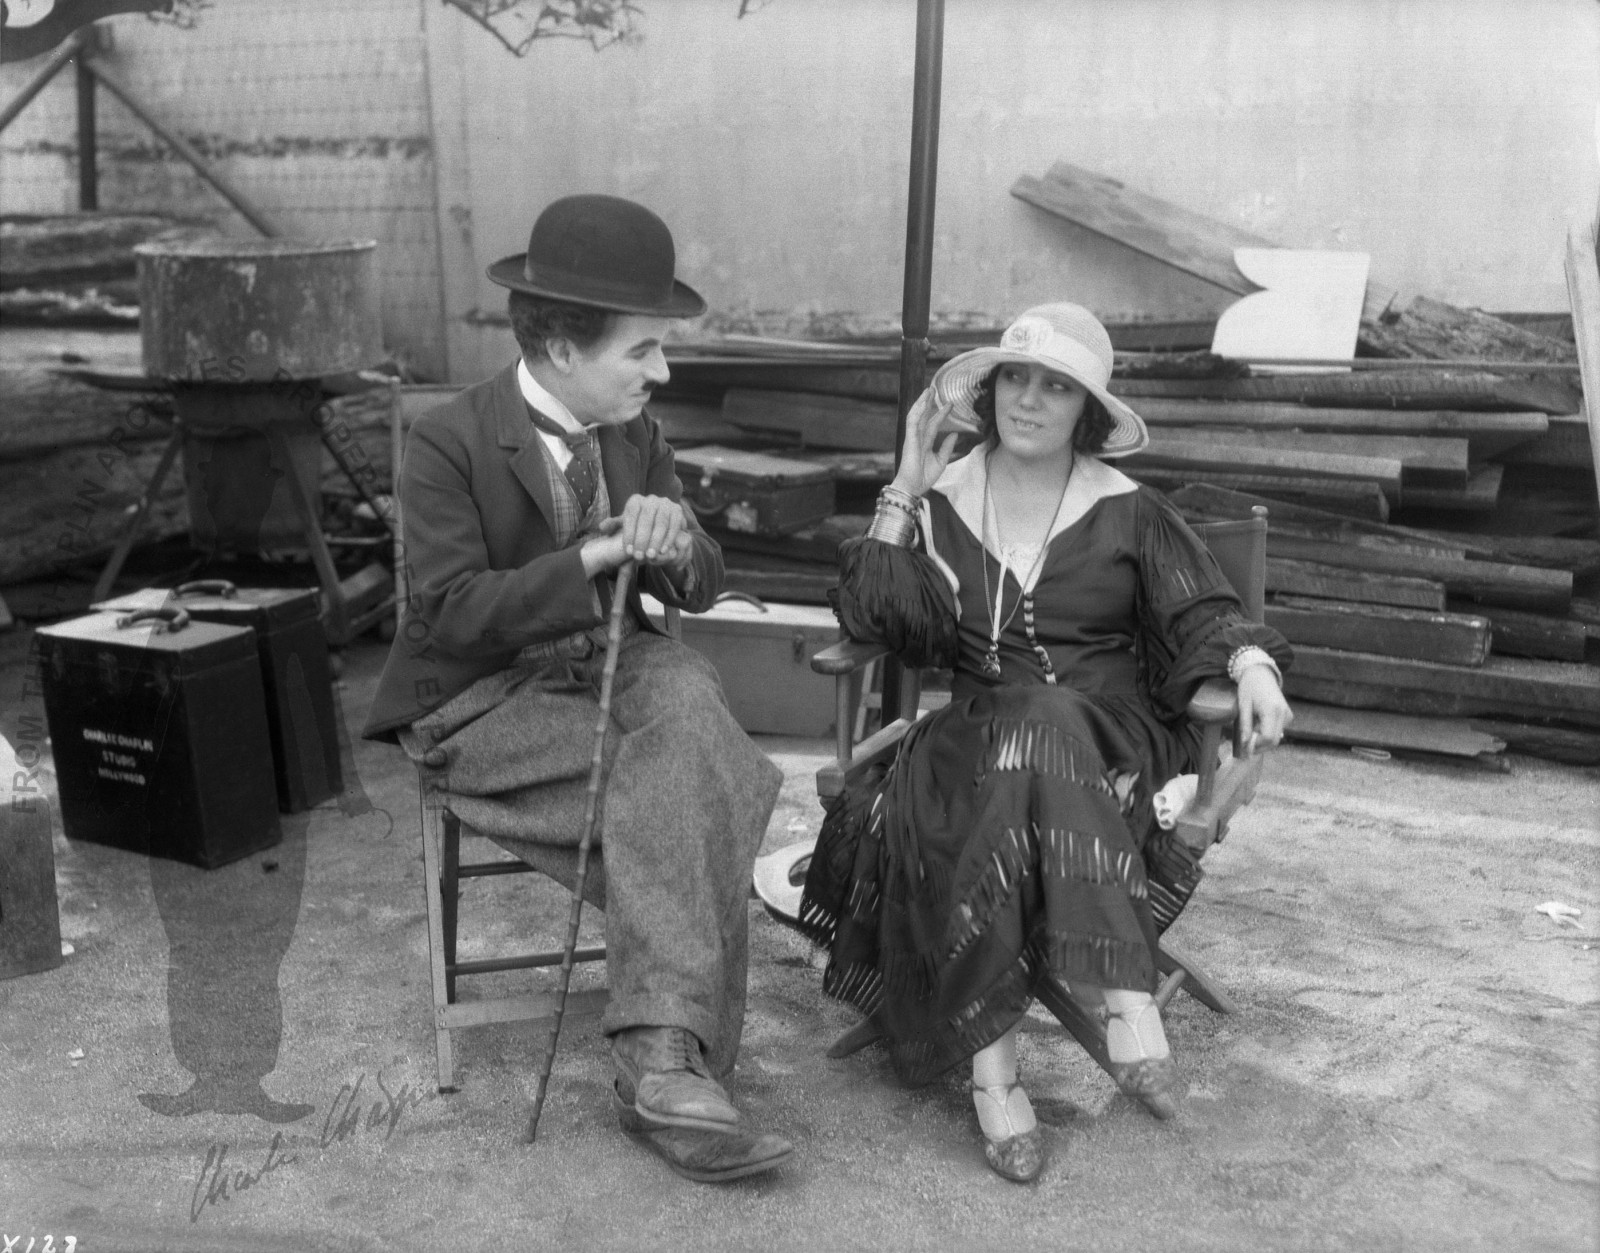 Charlie Chaplin and Raquel Meller on the set of The Circus, 1926